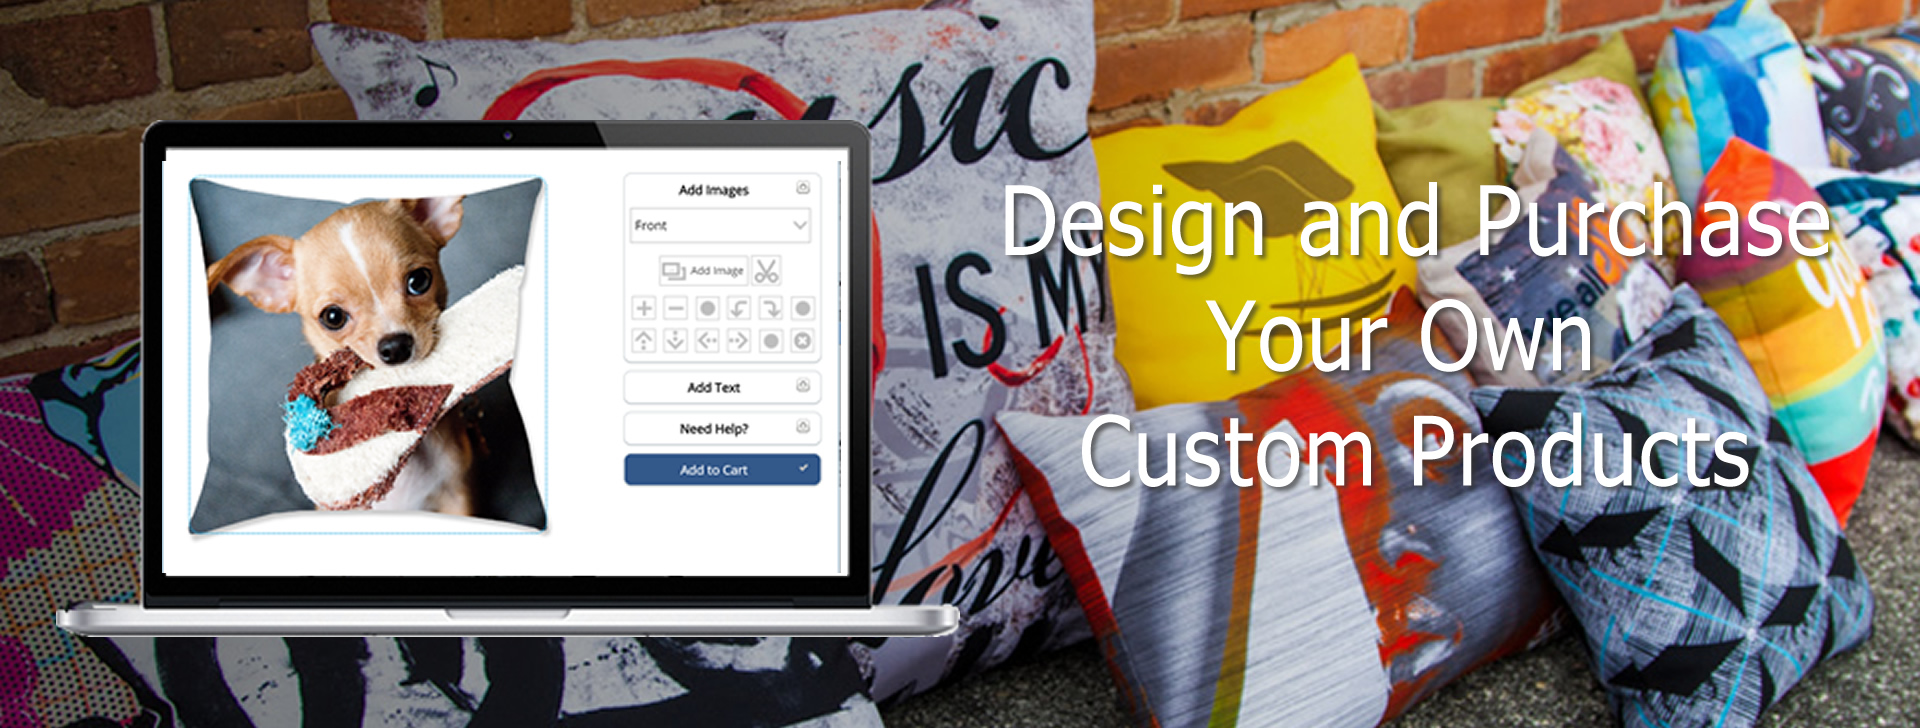 Design and Purchase Customized Products